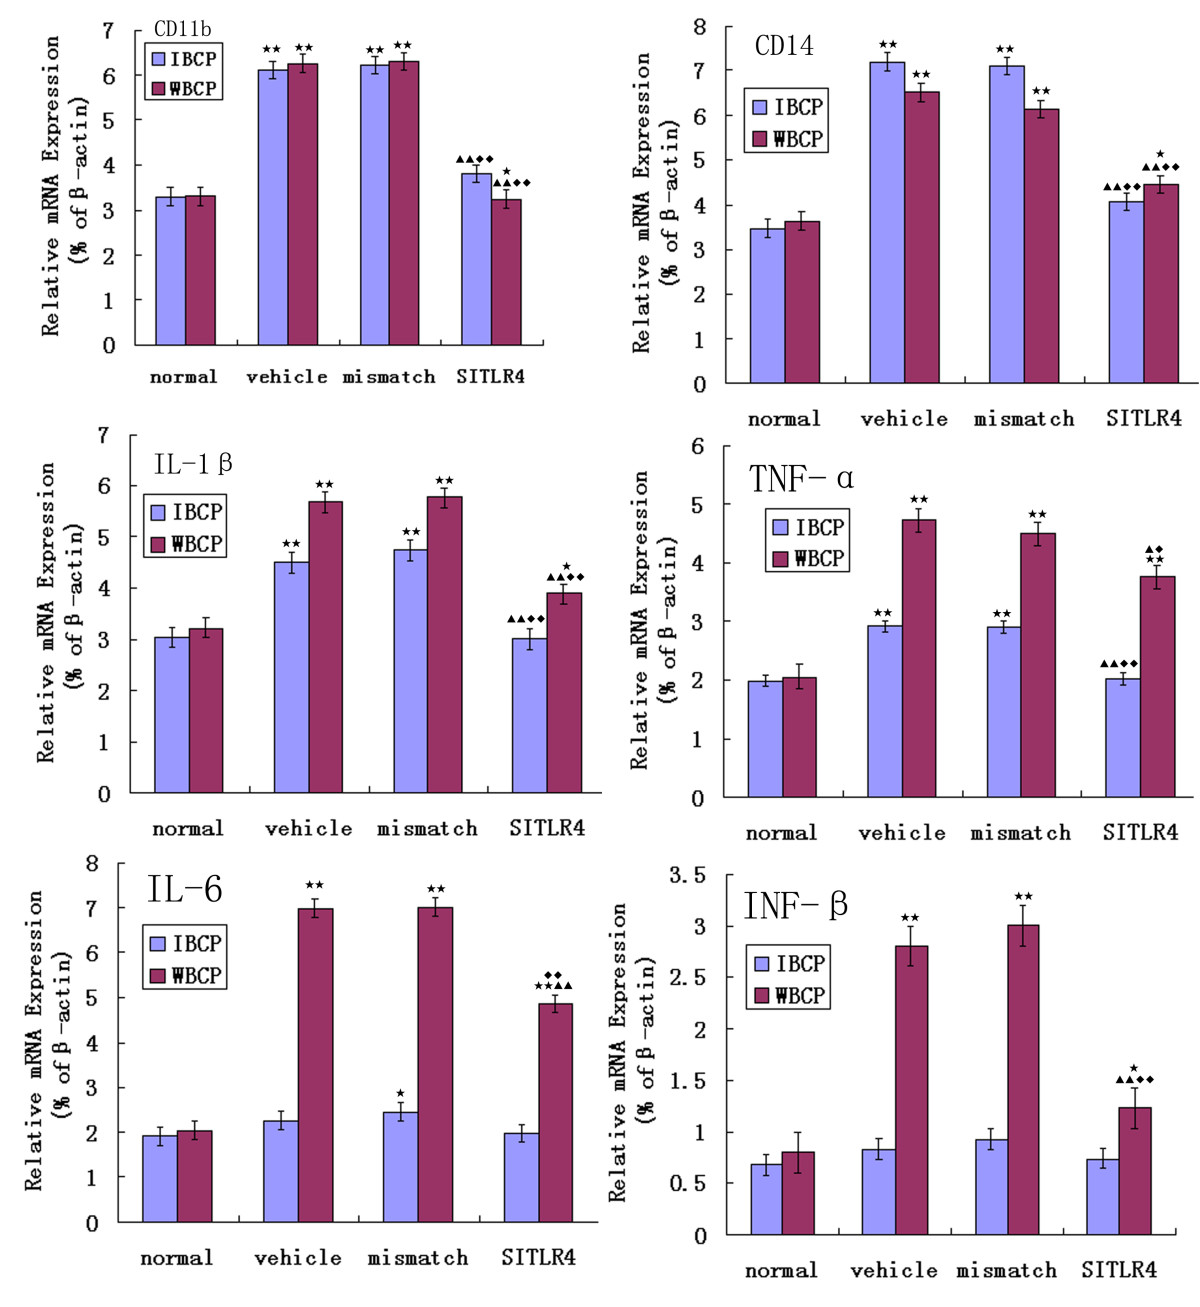 Down-regulation of Toll-like receptor 4 gene expression by